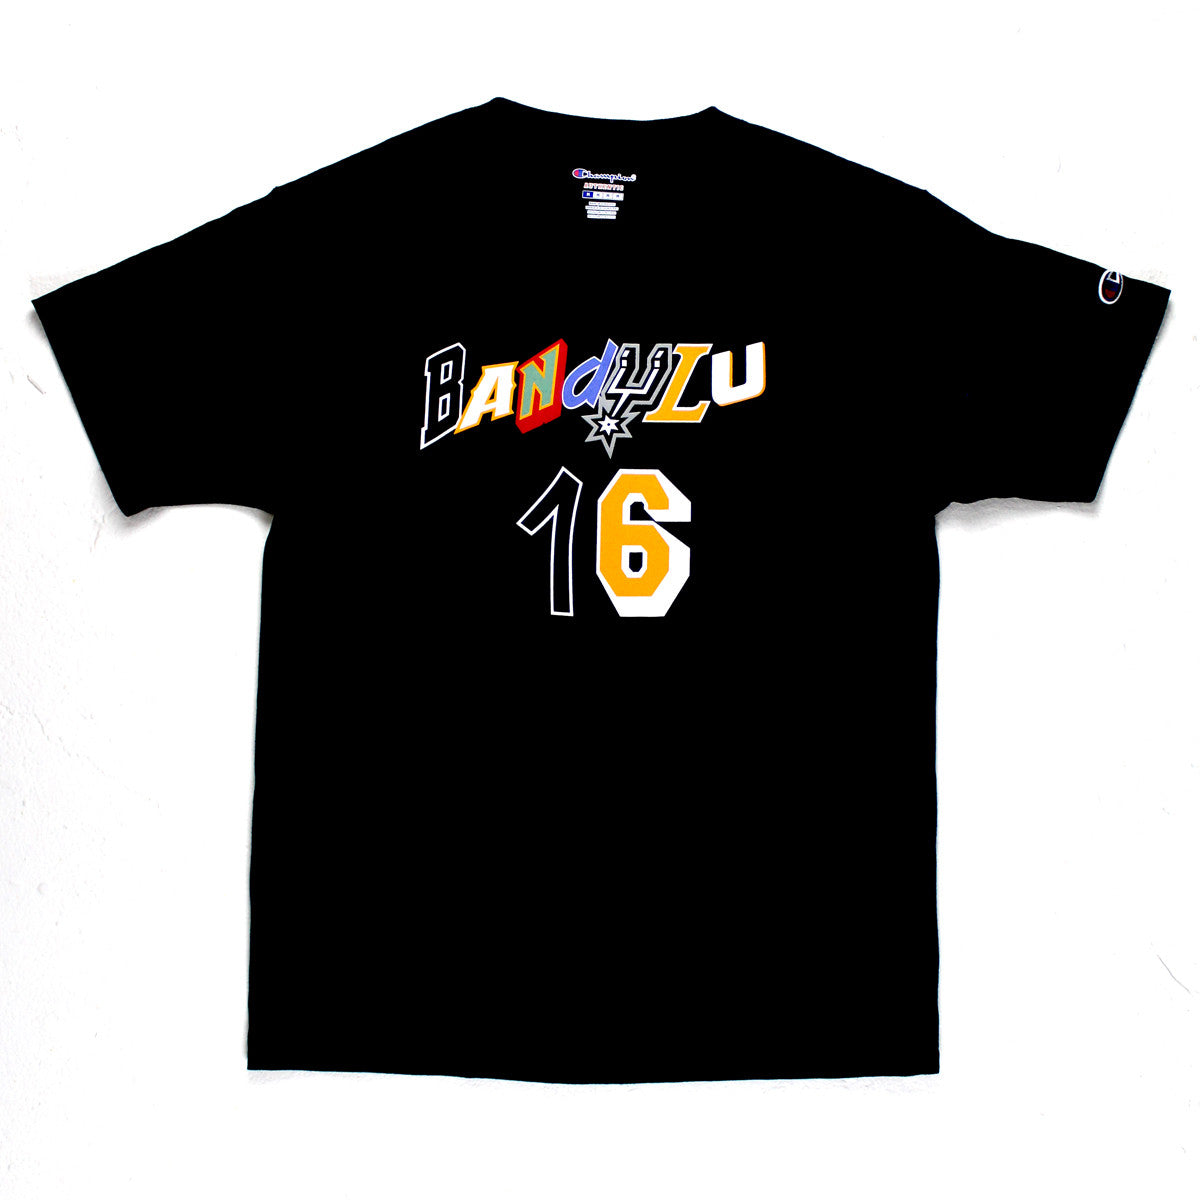 "BANDULU ""NBA JAM"" CHAMPION GRAPHIC TEE"